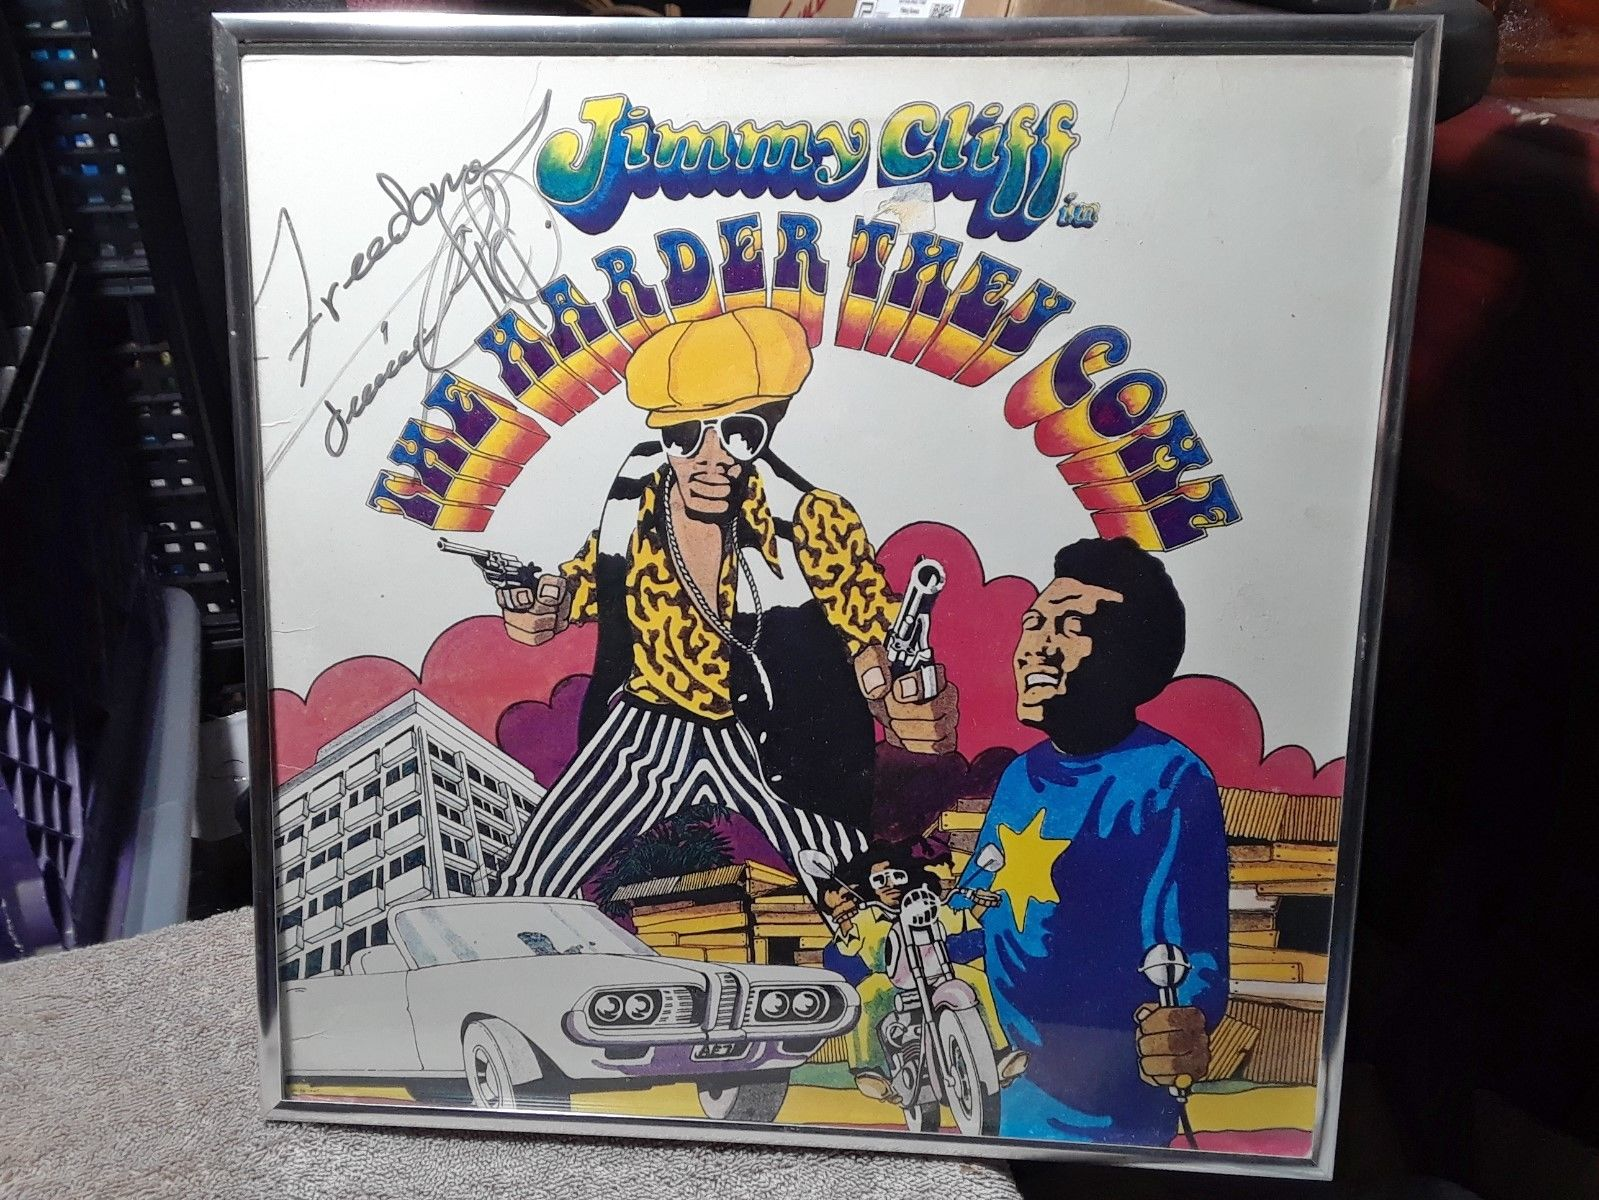 Autographed The Harder They Come Record  Album LP Hand Signed By Jimmy Cliff